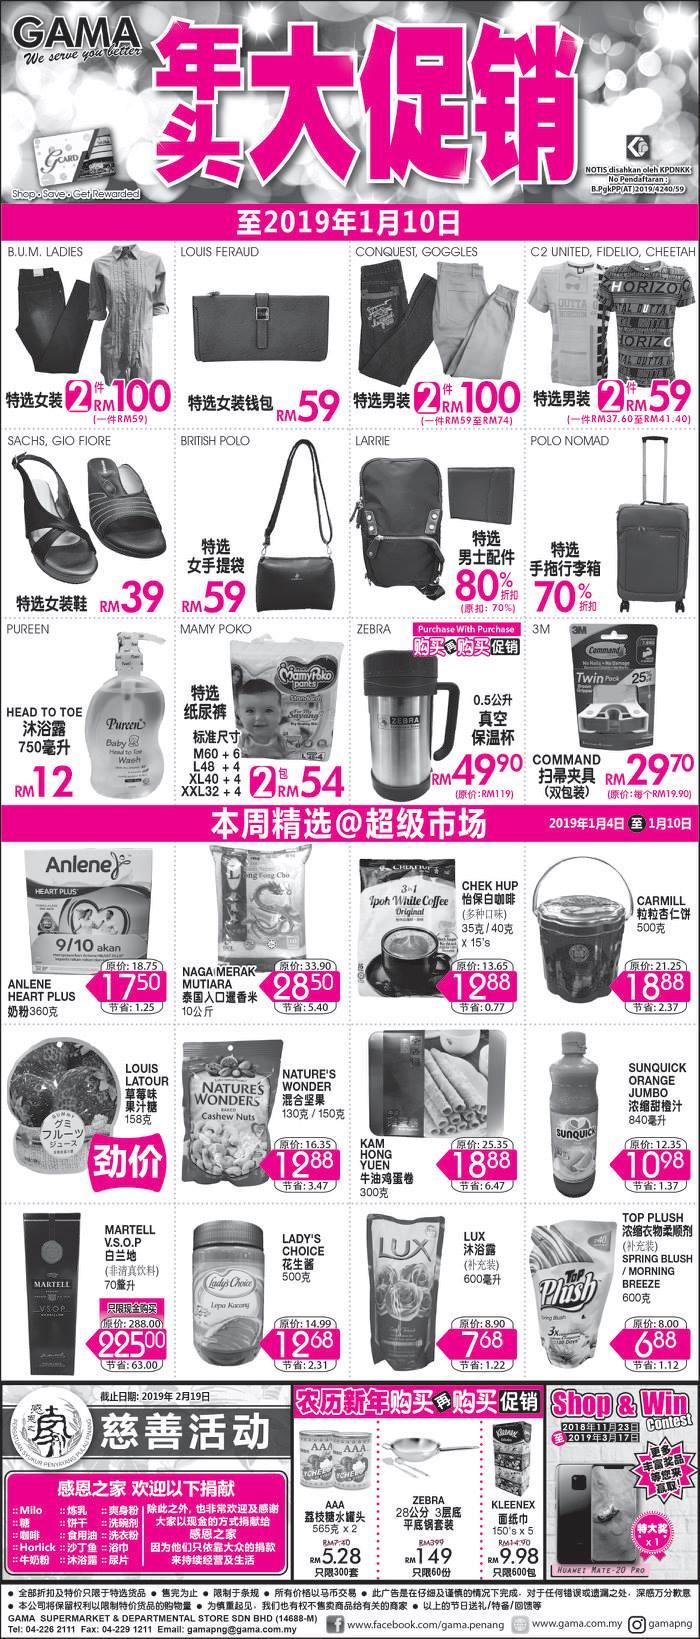 Gama Early Year Sale Promotion (4 January 2019 - 10 January 2019)